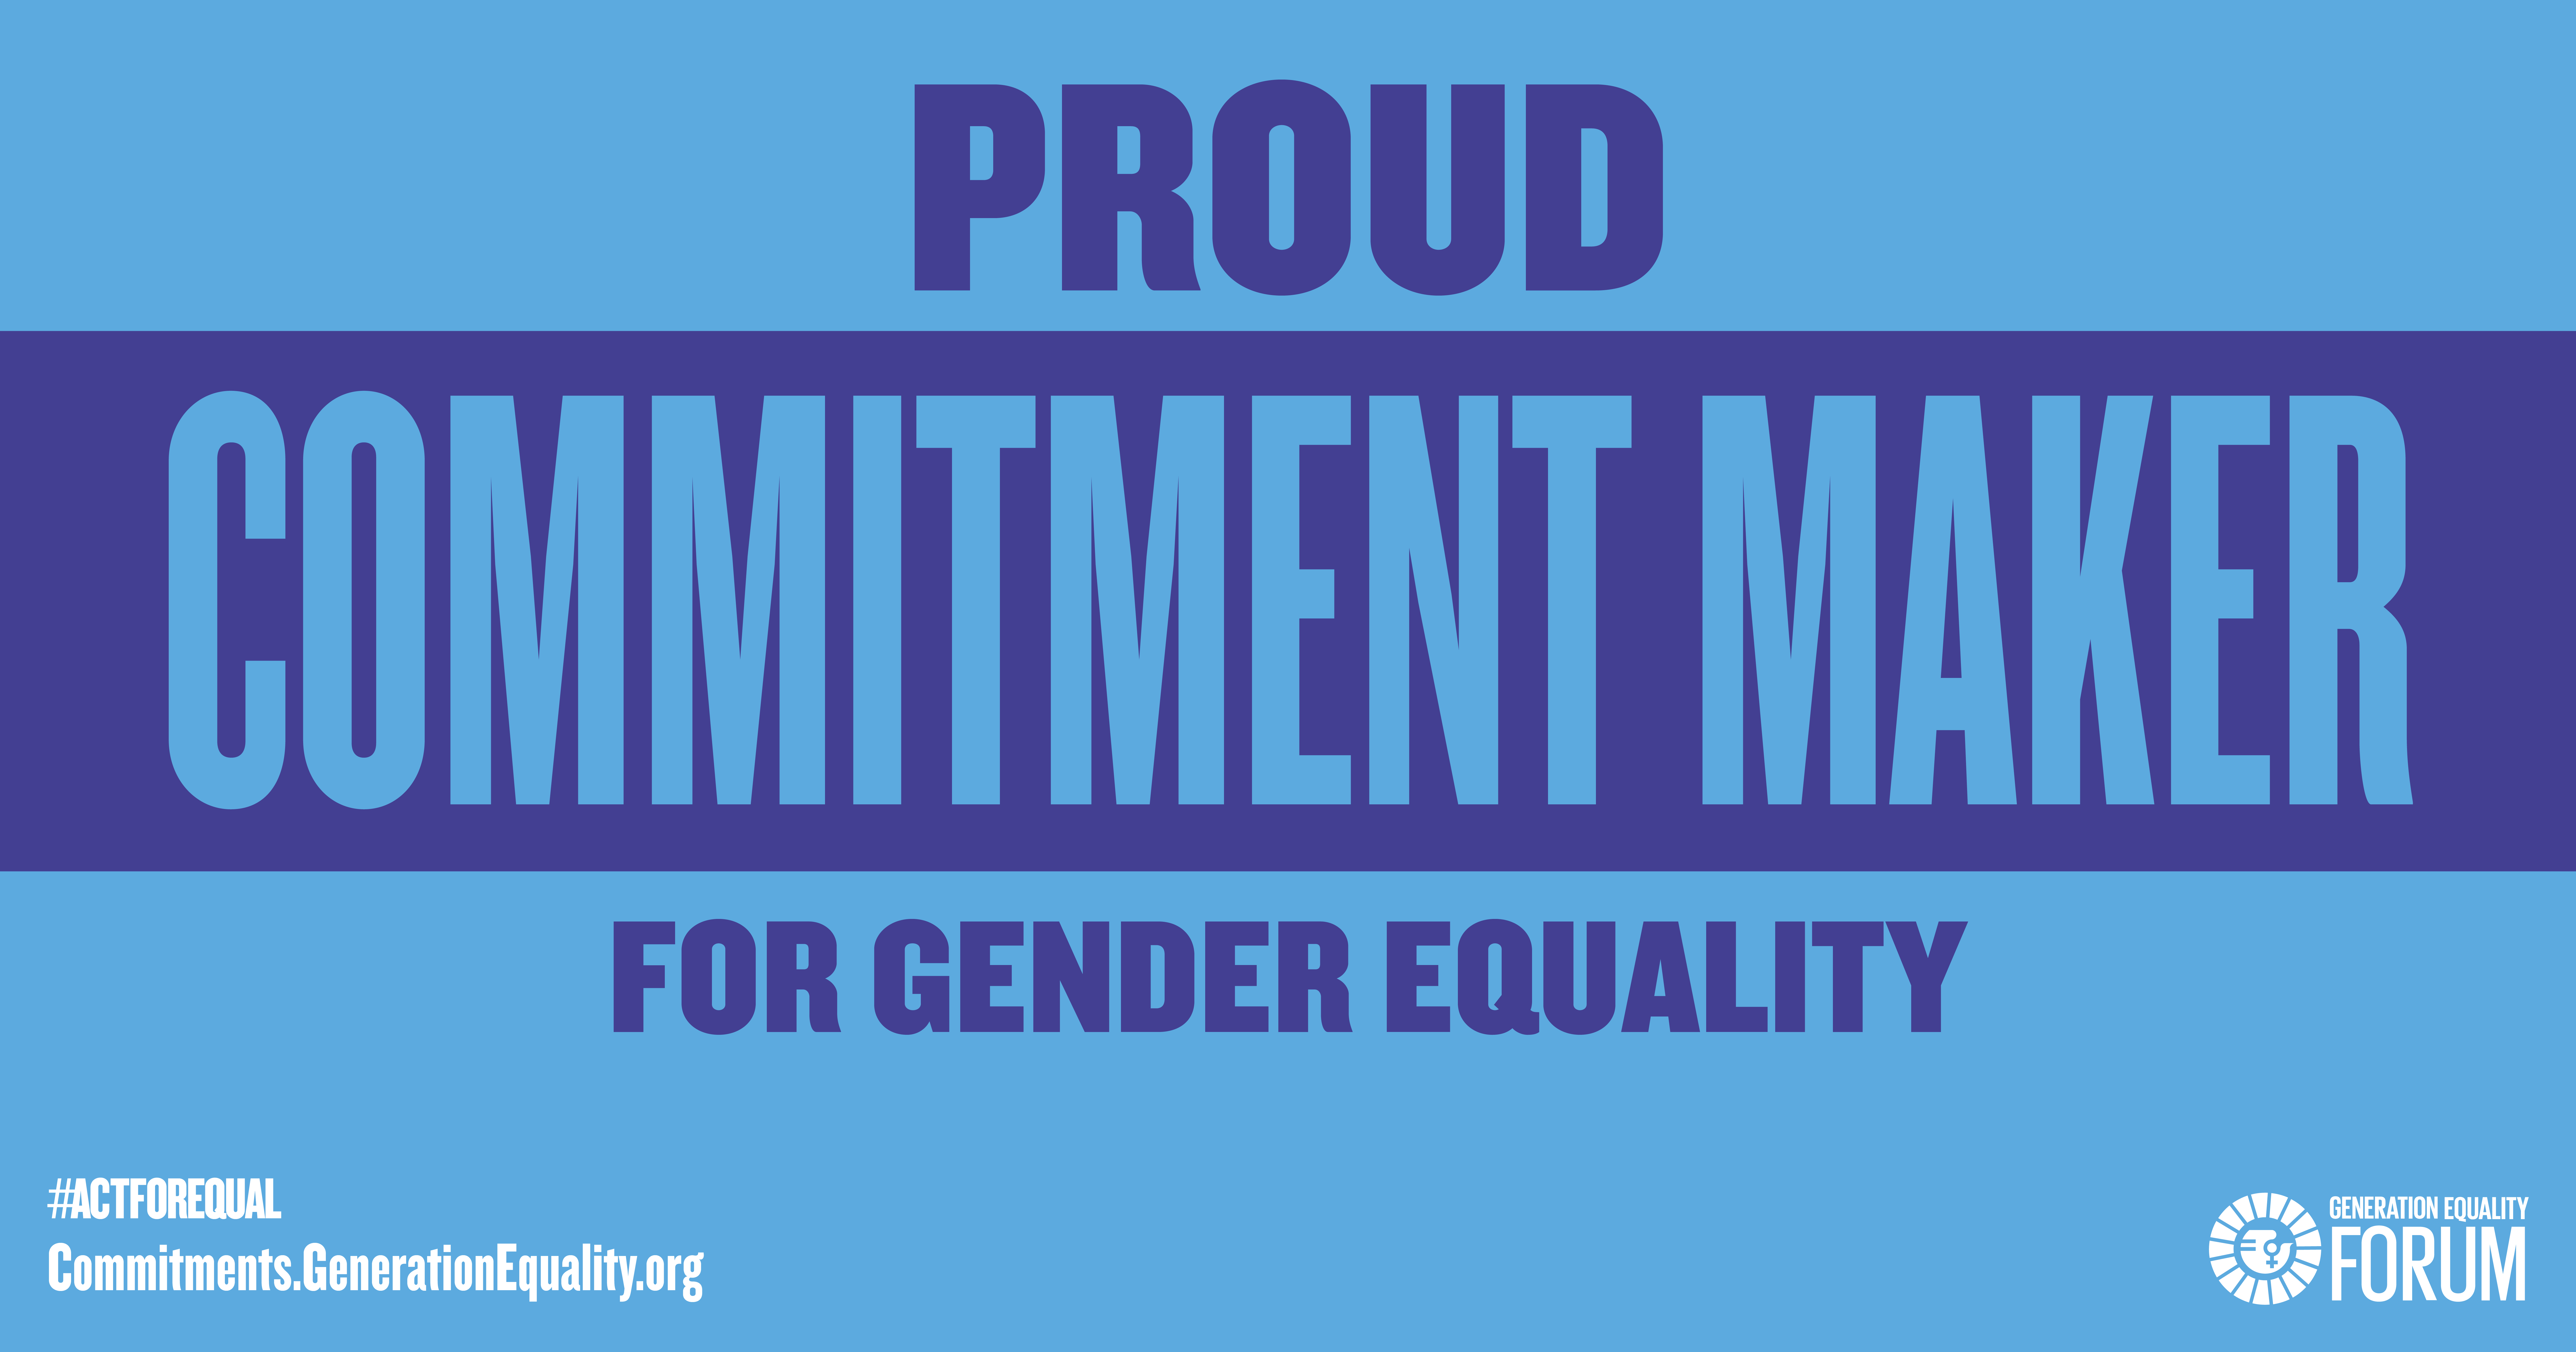 Proud Commitment Maker for Generation Equality